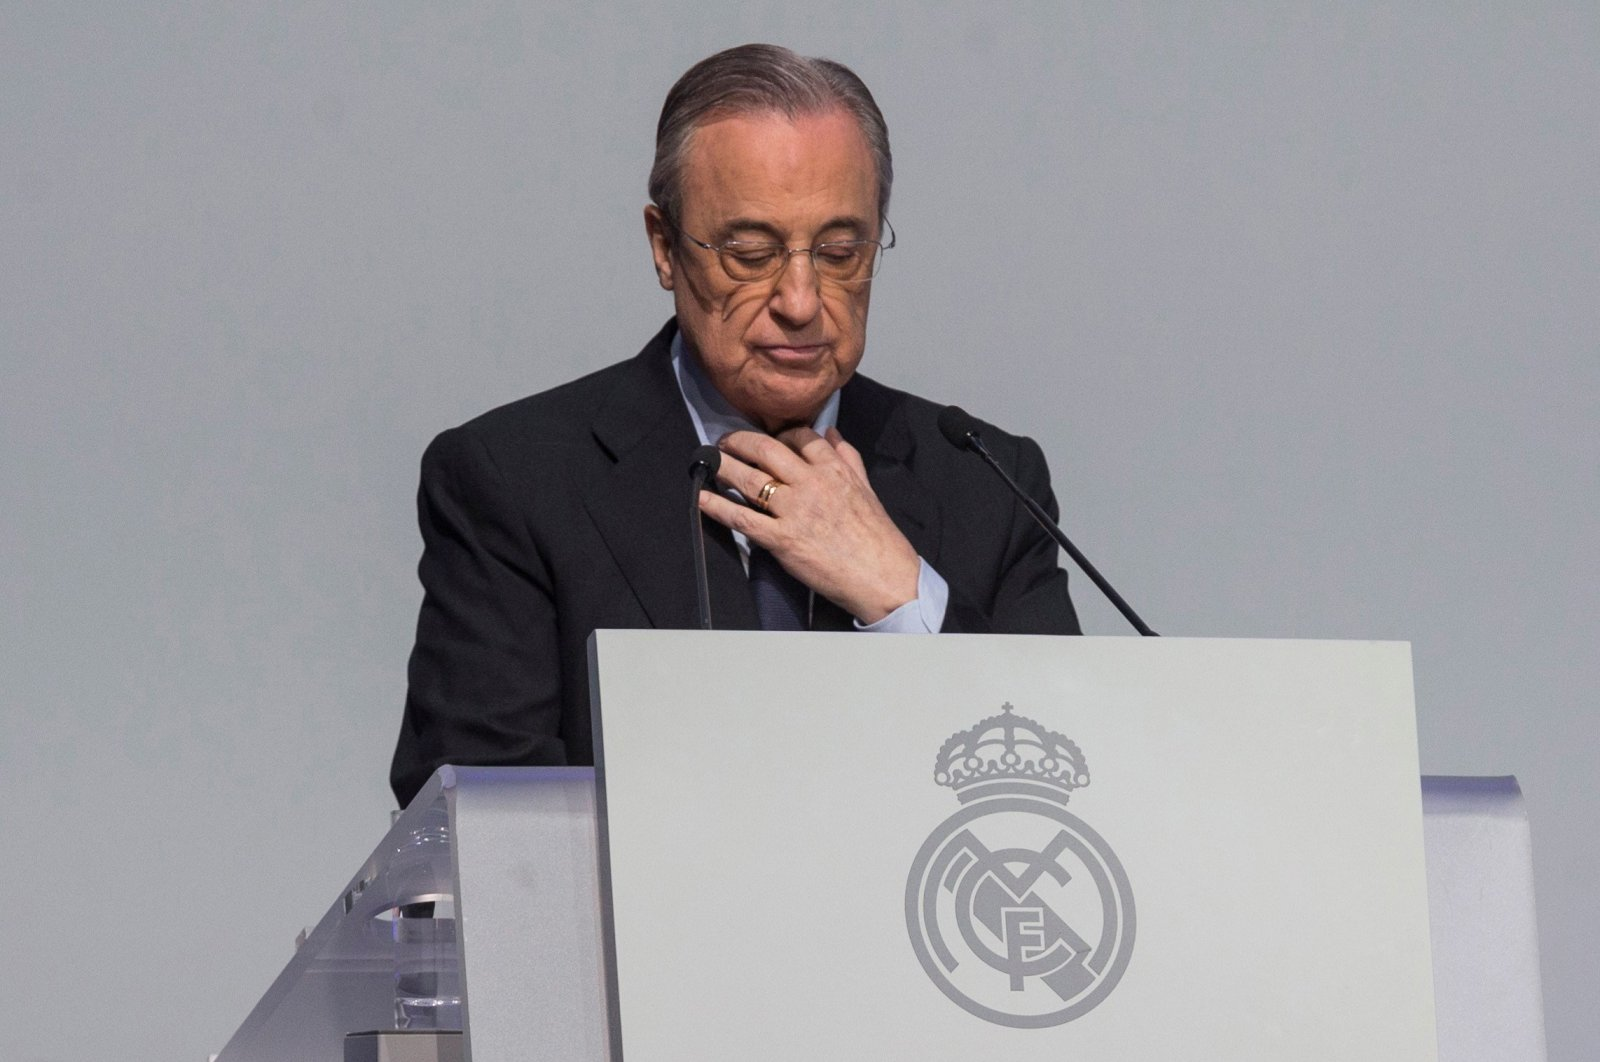 Real Madrid president Florentino Perez delivers a speech during an event in Madrid, Spain, Nov. 3, 2018.